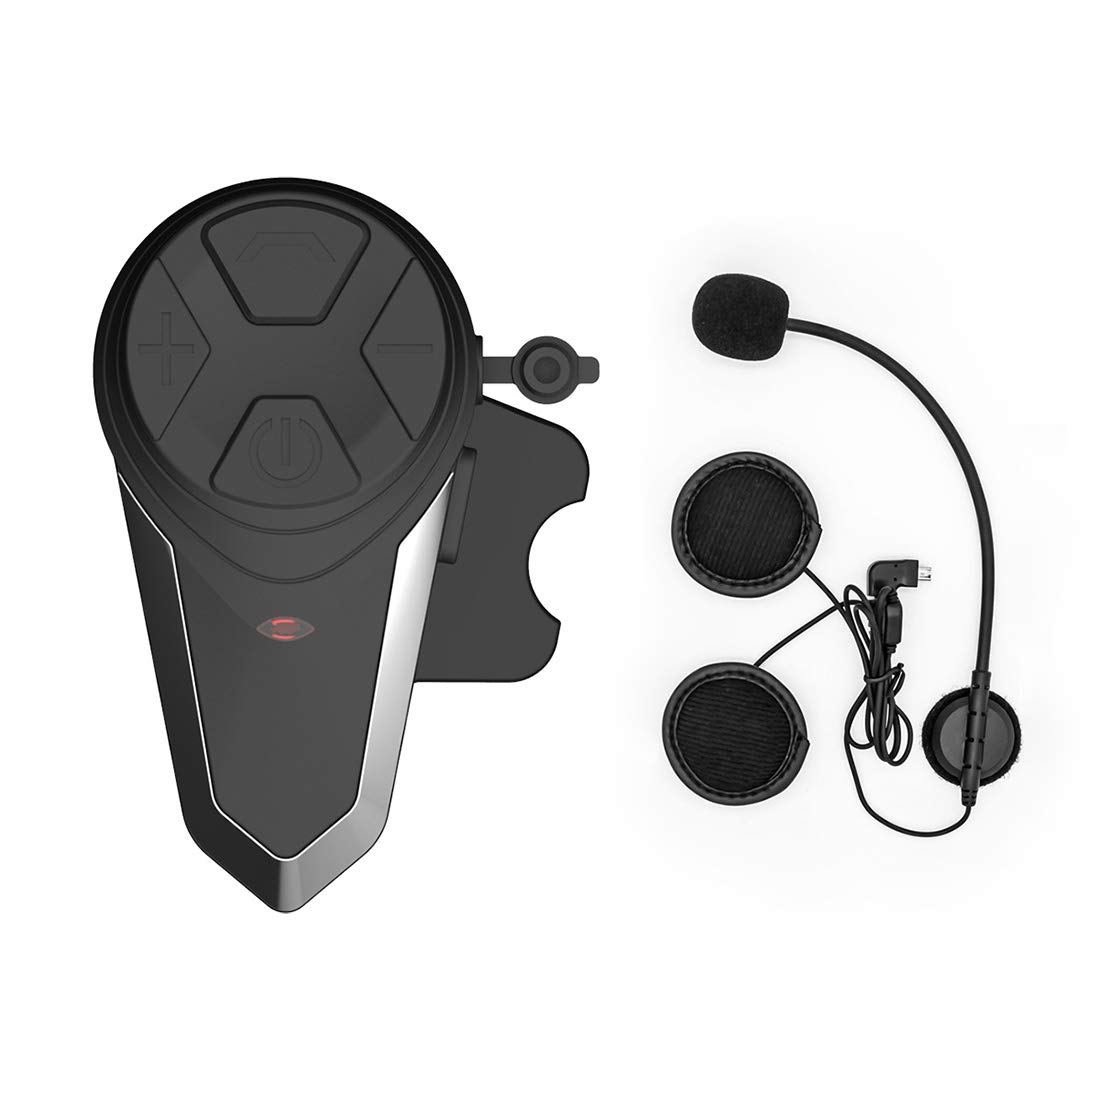 ENCHICAS Motorcycle Communication Systems, BT-S3 Helmet Bluetooth Headset Intercom Wireless Interphone Supports FM Radio, GPS Voice Command, Music, Hands-Free Calls